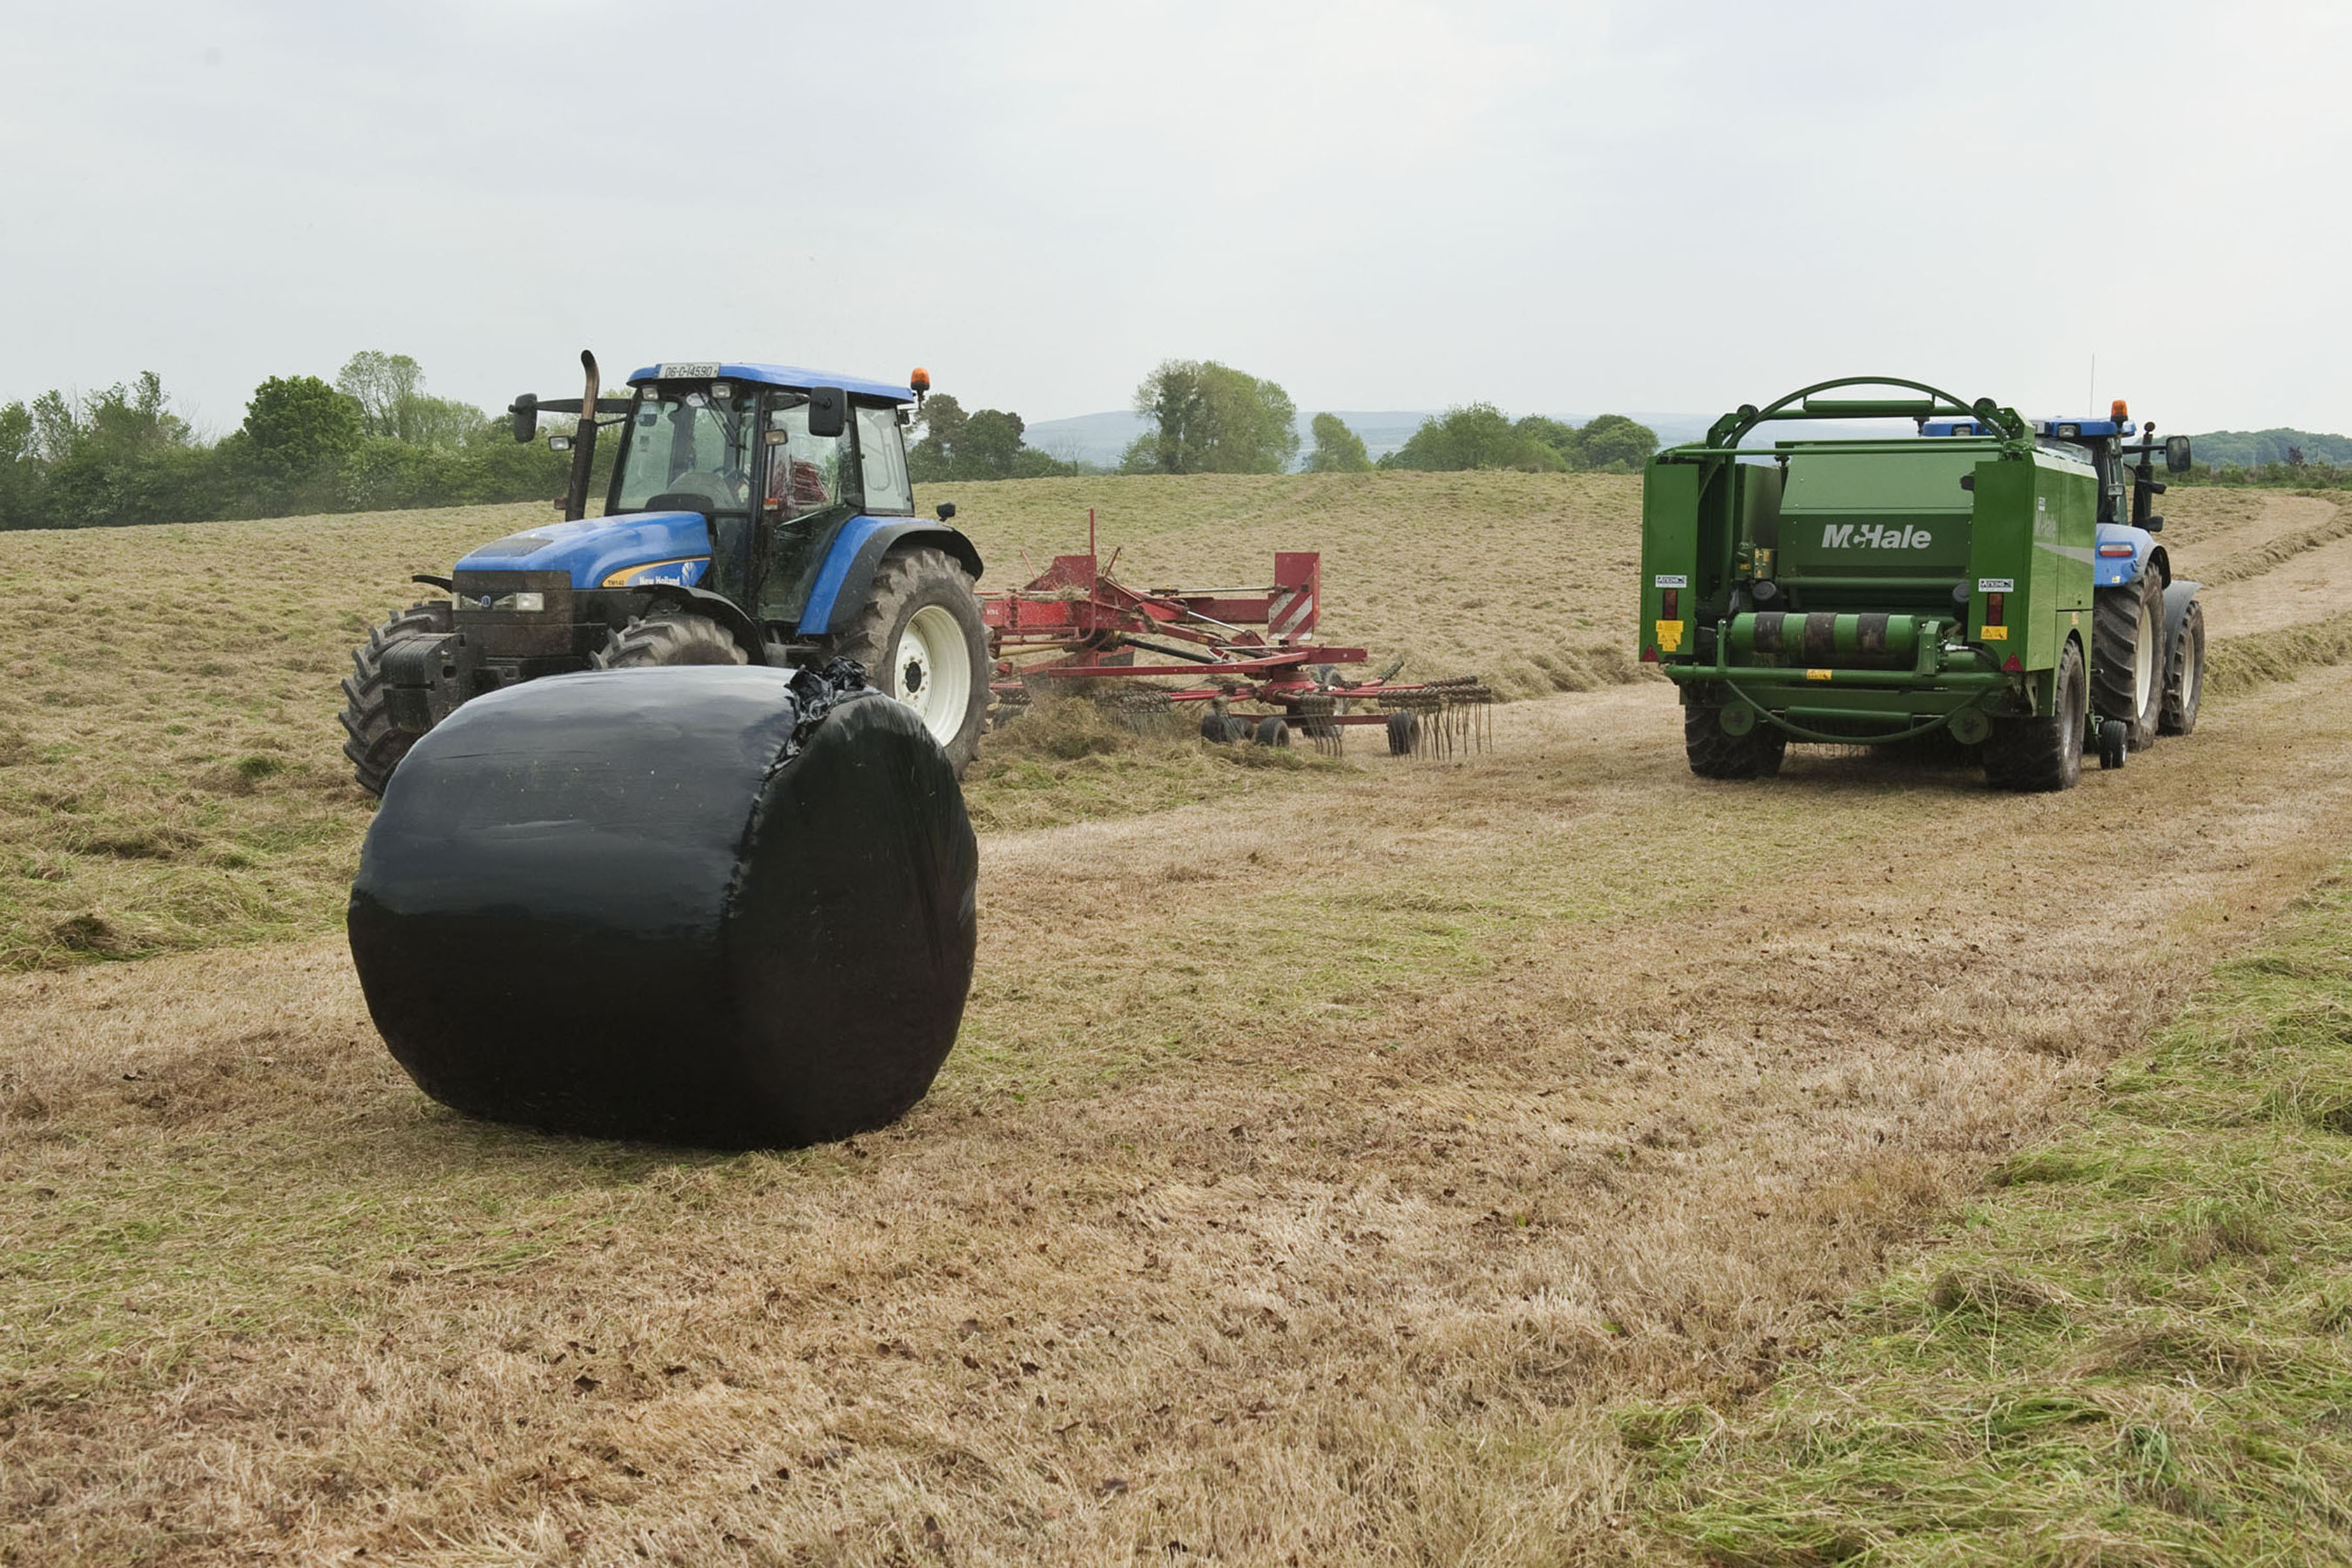 Grass advice: Time to change the mindset; time to think silage